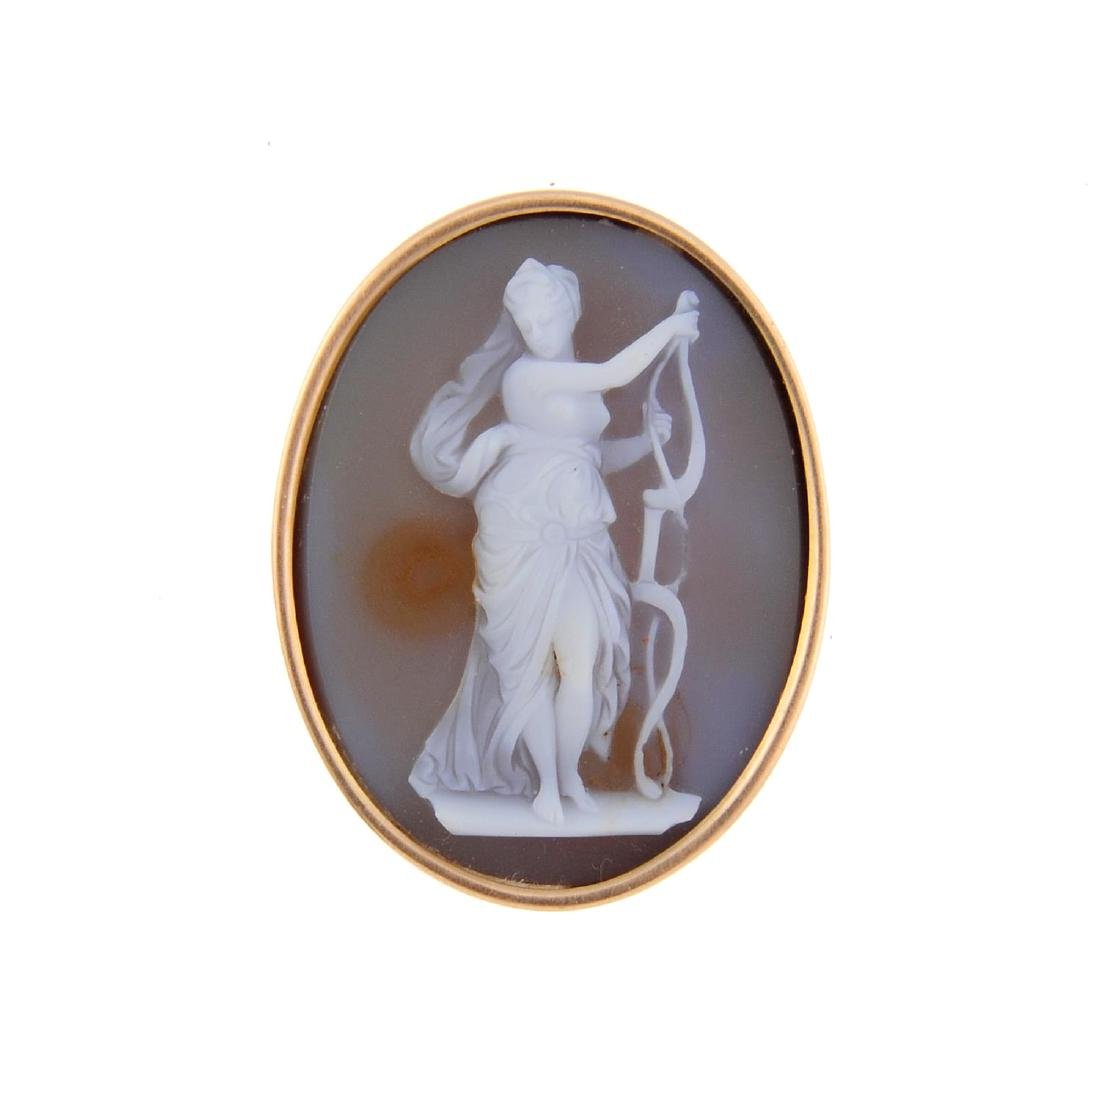 A cameo brooch. The oval agate panel depicting a female